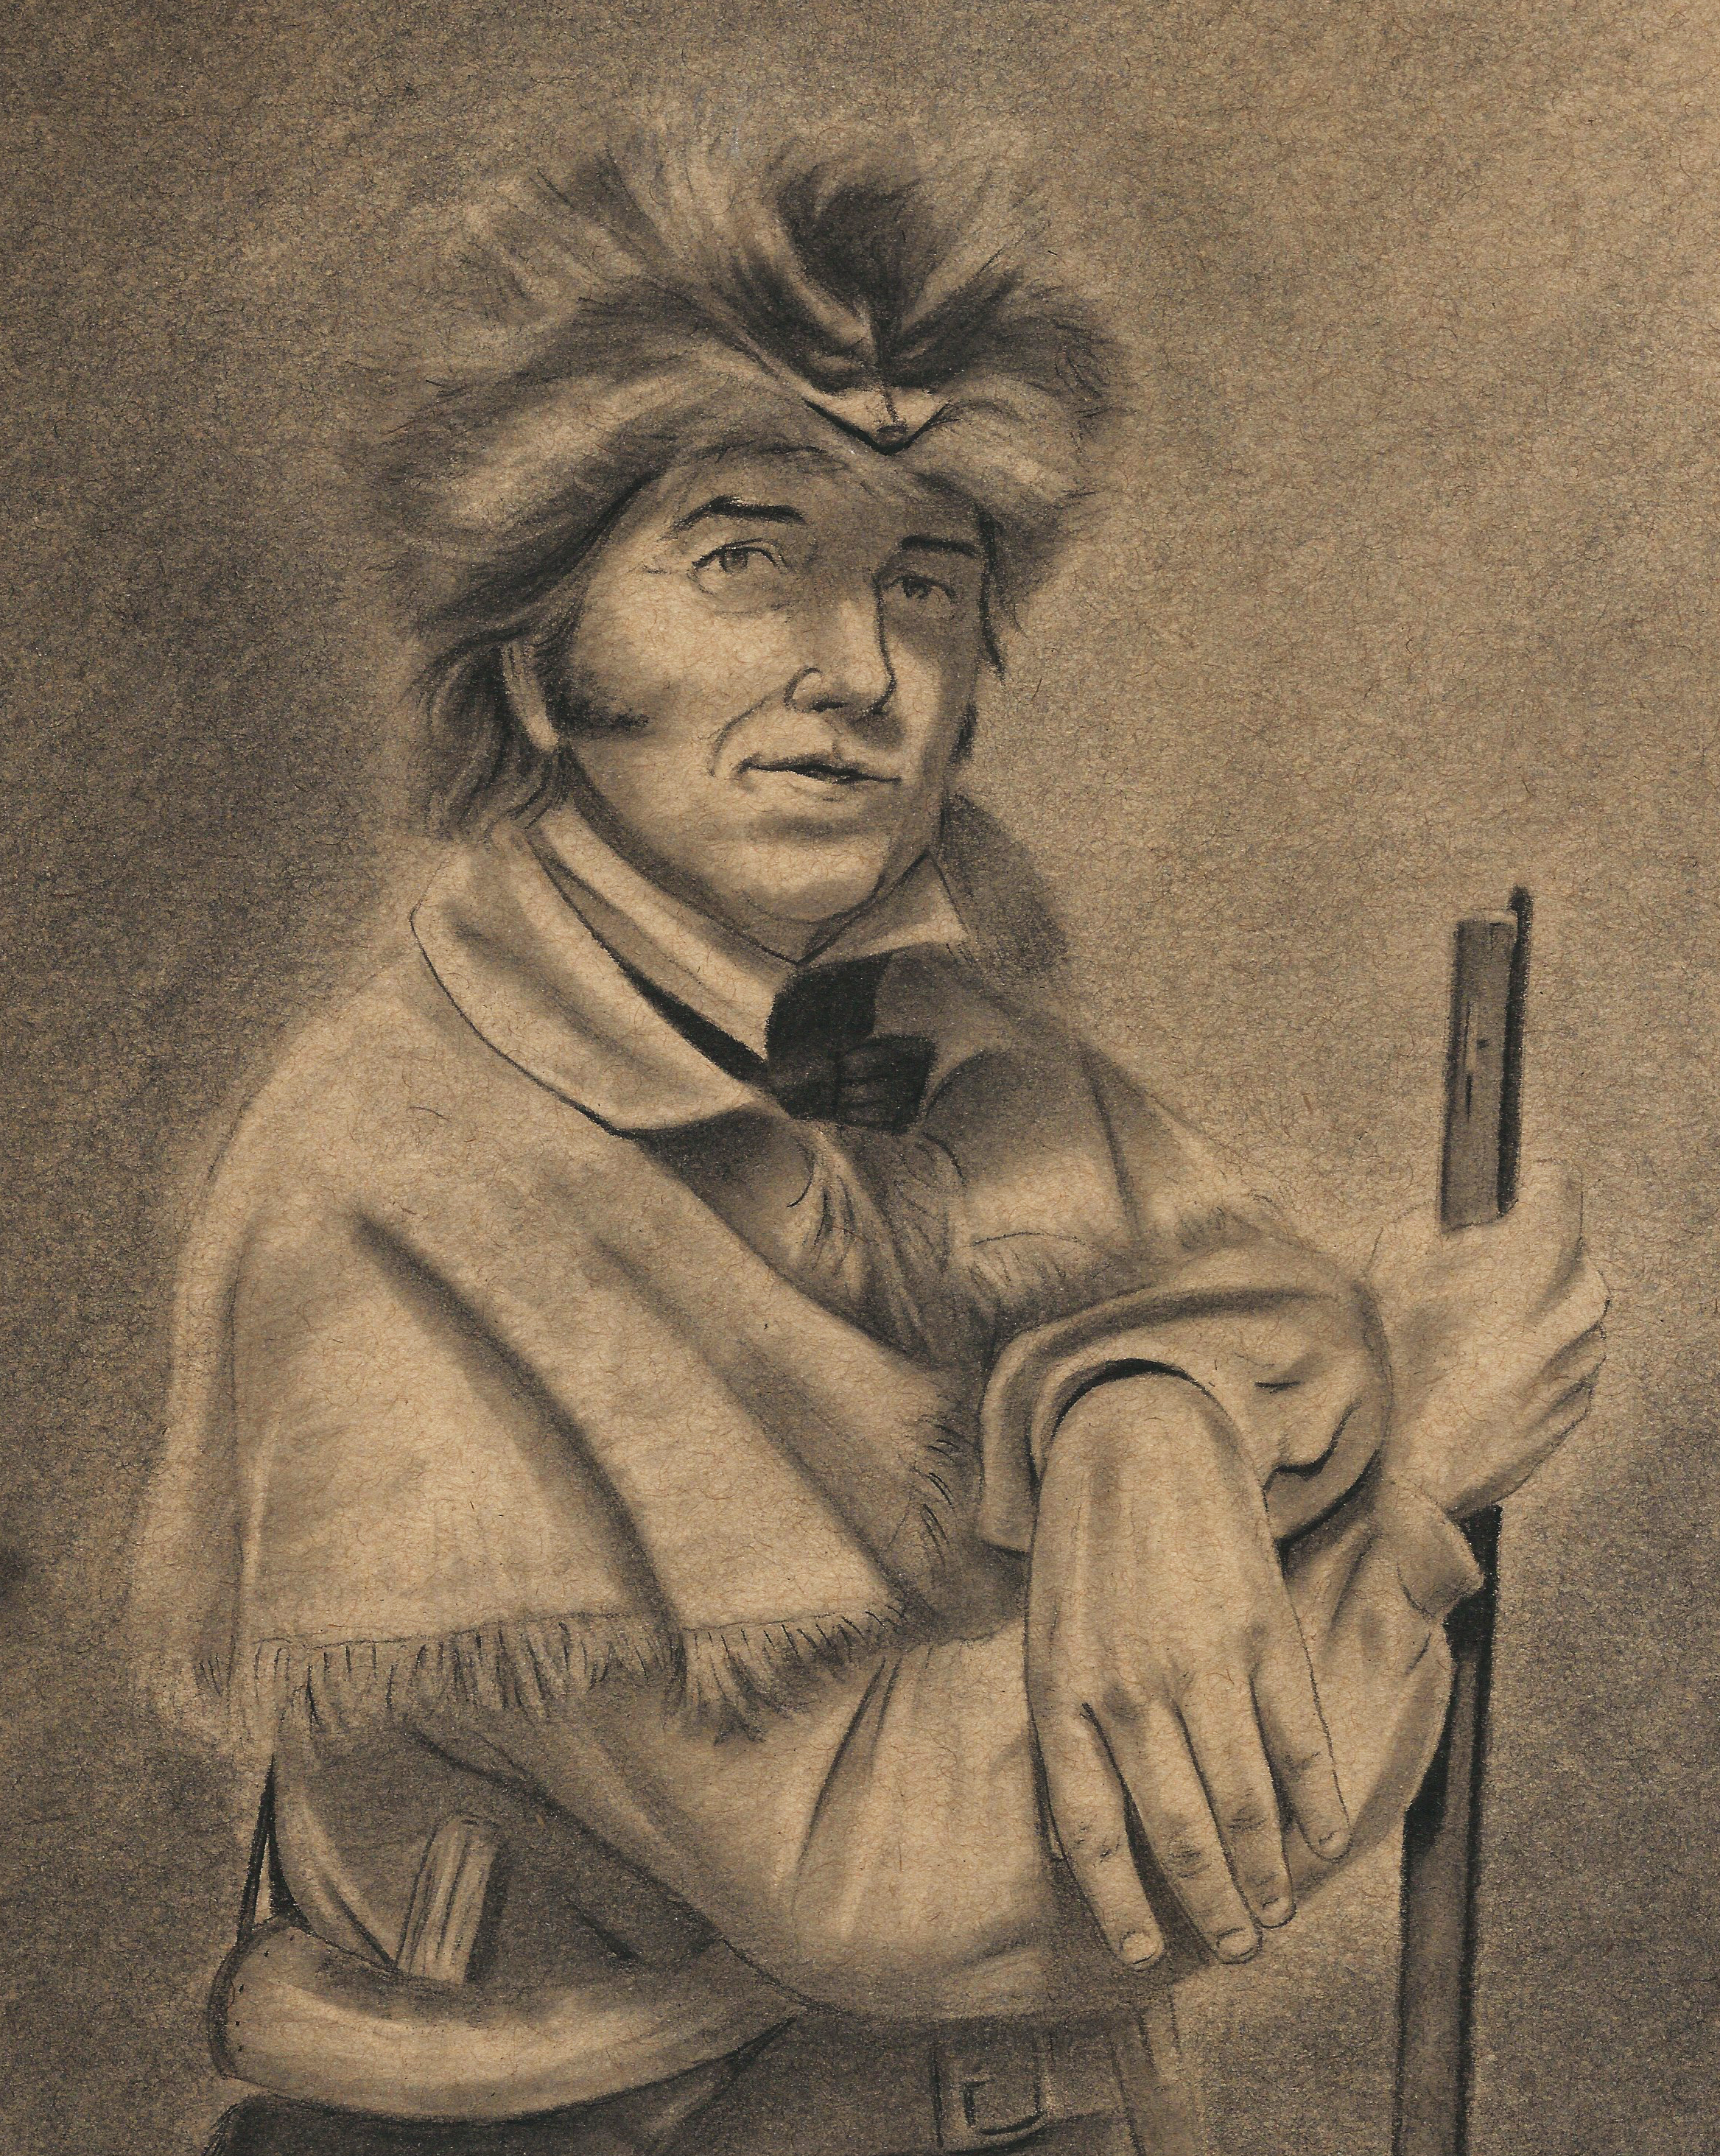 The Storyteller: David Crockett